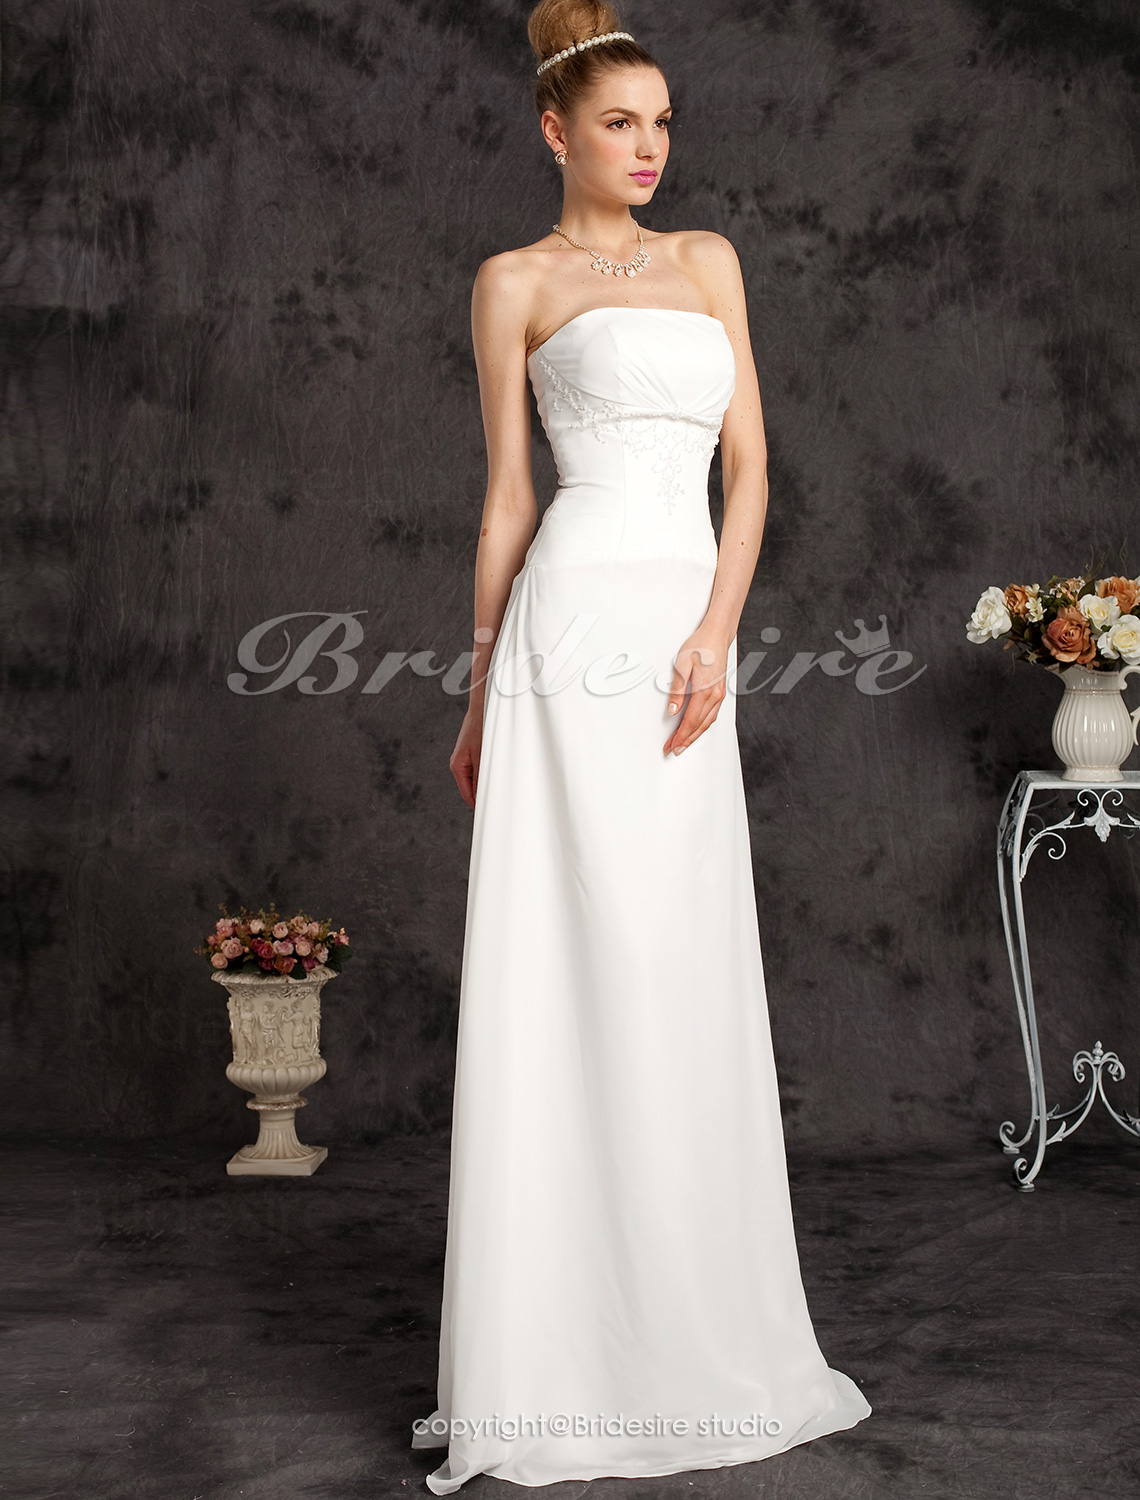 Sheath/ Column Chiffon Floor-length Wedding Dress With Beaded Ap